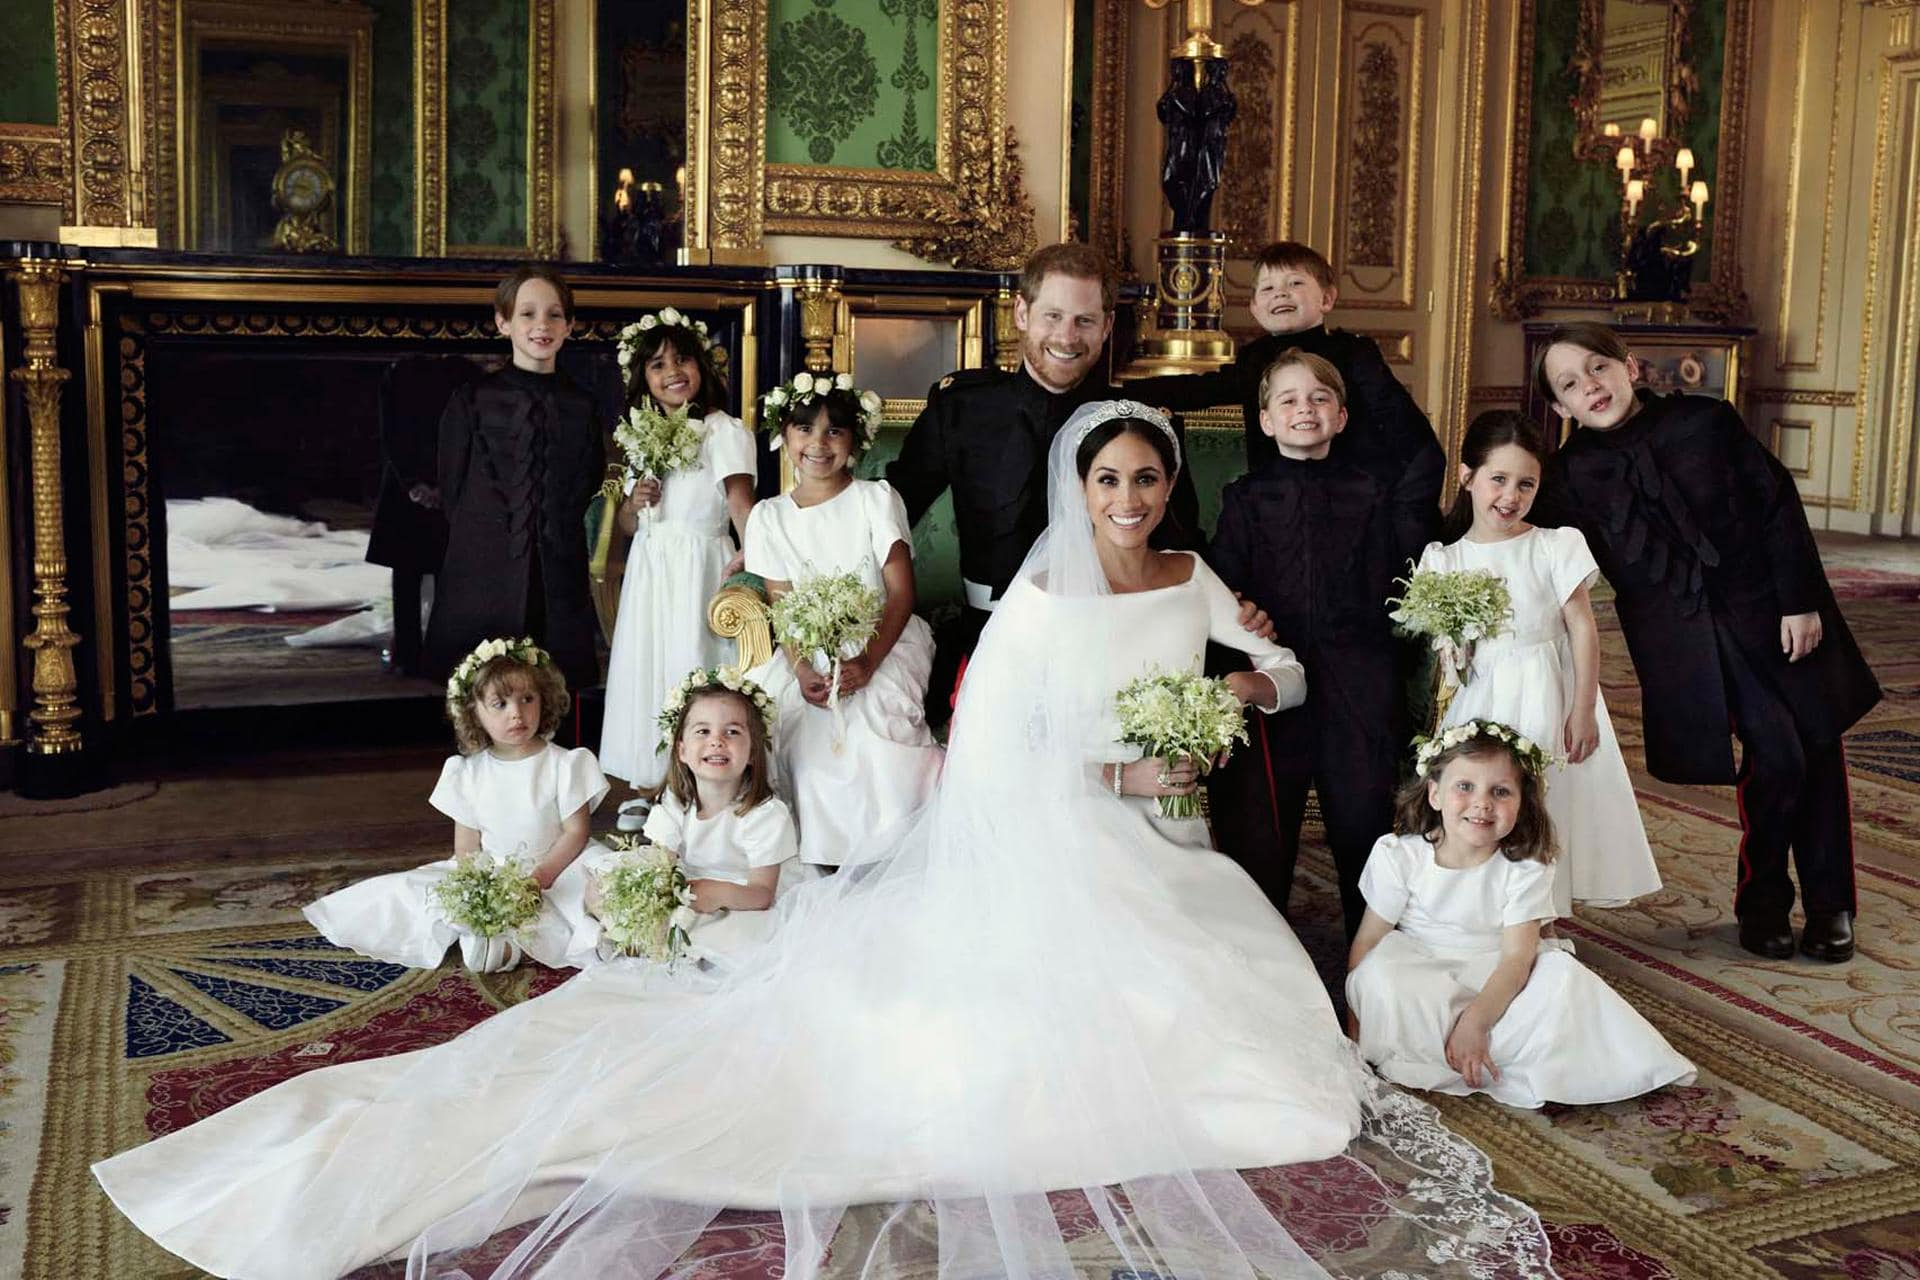 PRINCE HARRY & MEGHAN MARKLE'S FIRST WEDDING ANNIVERSARY | ROYAL WEDDING RECAP